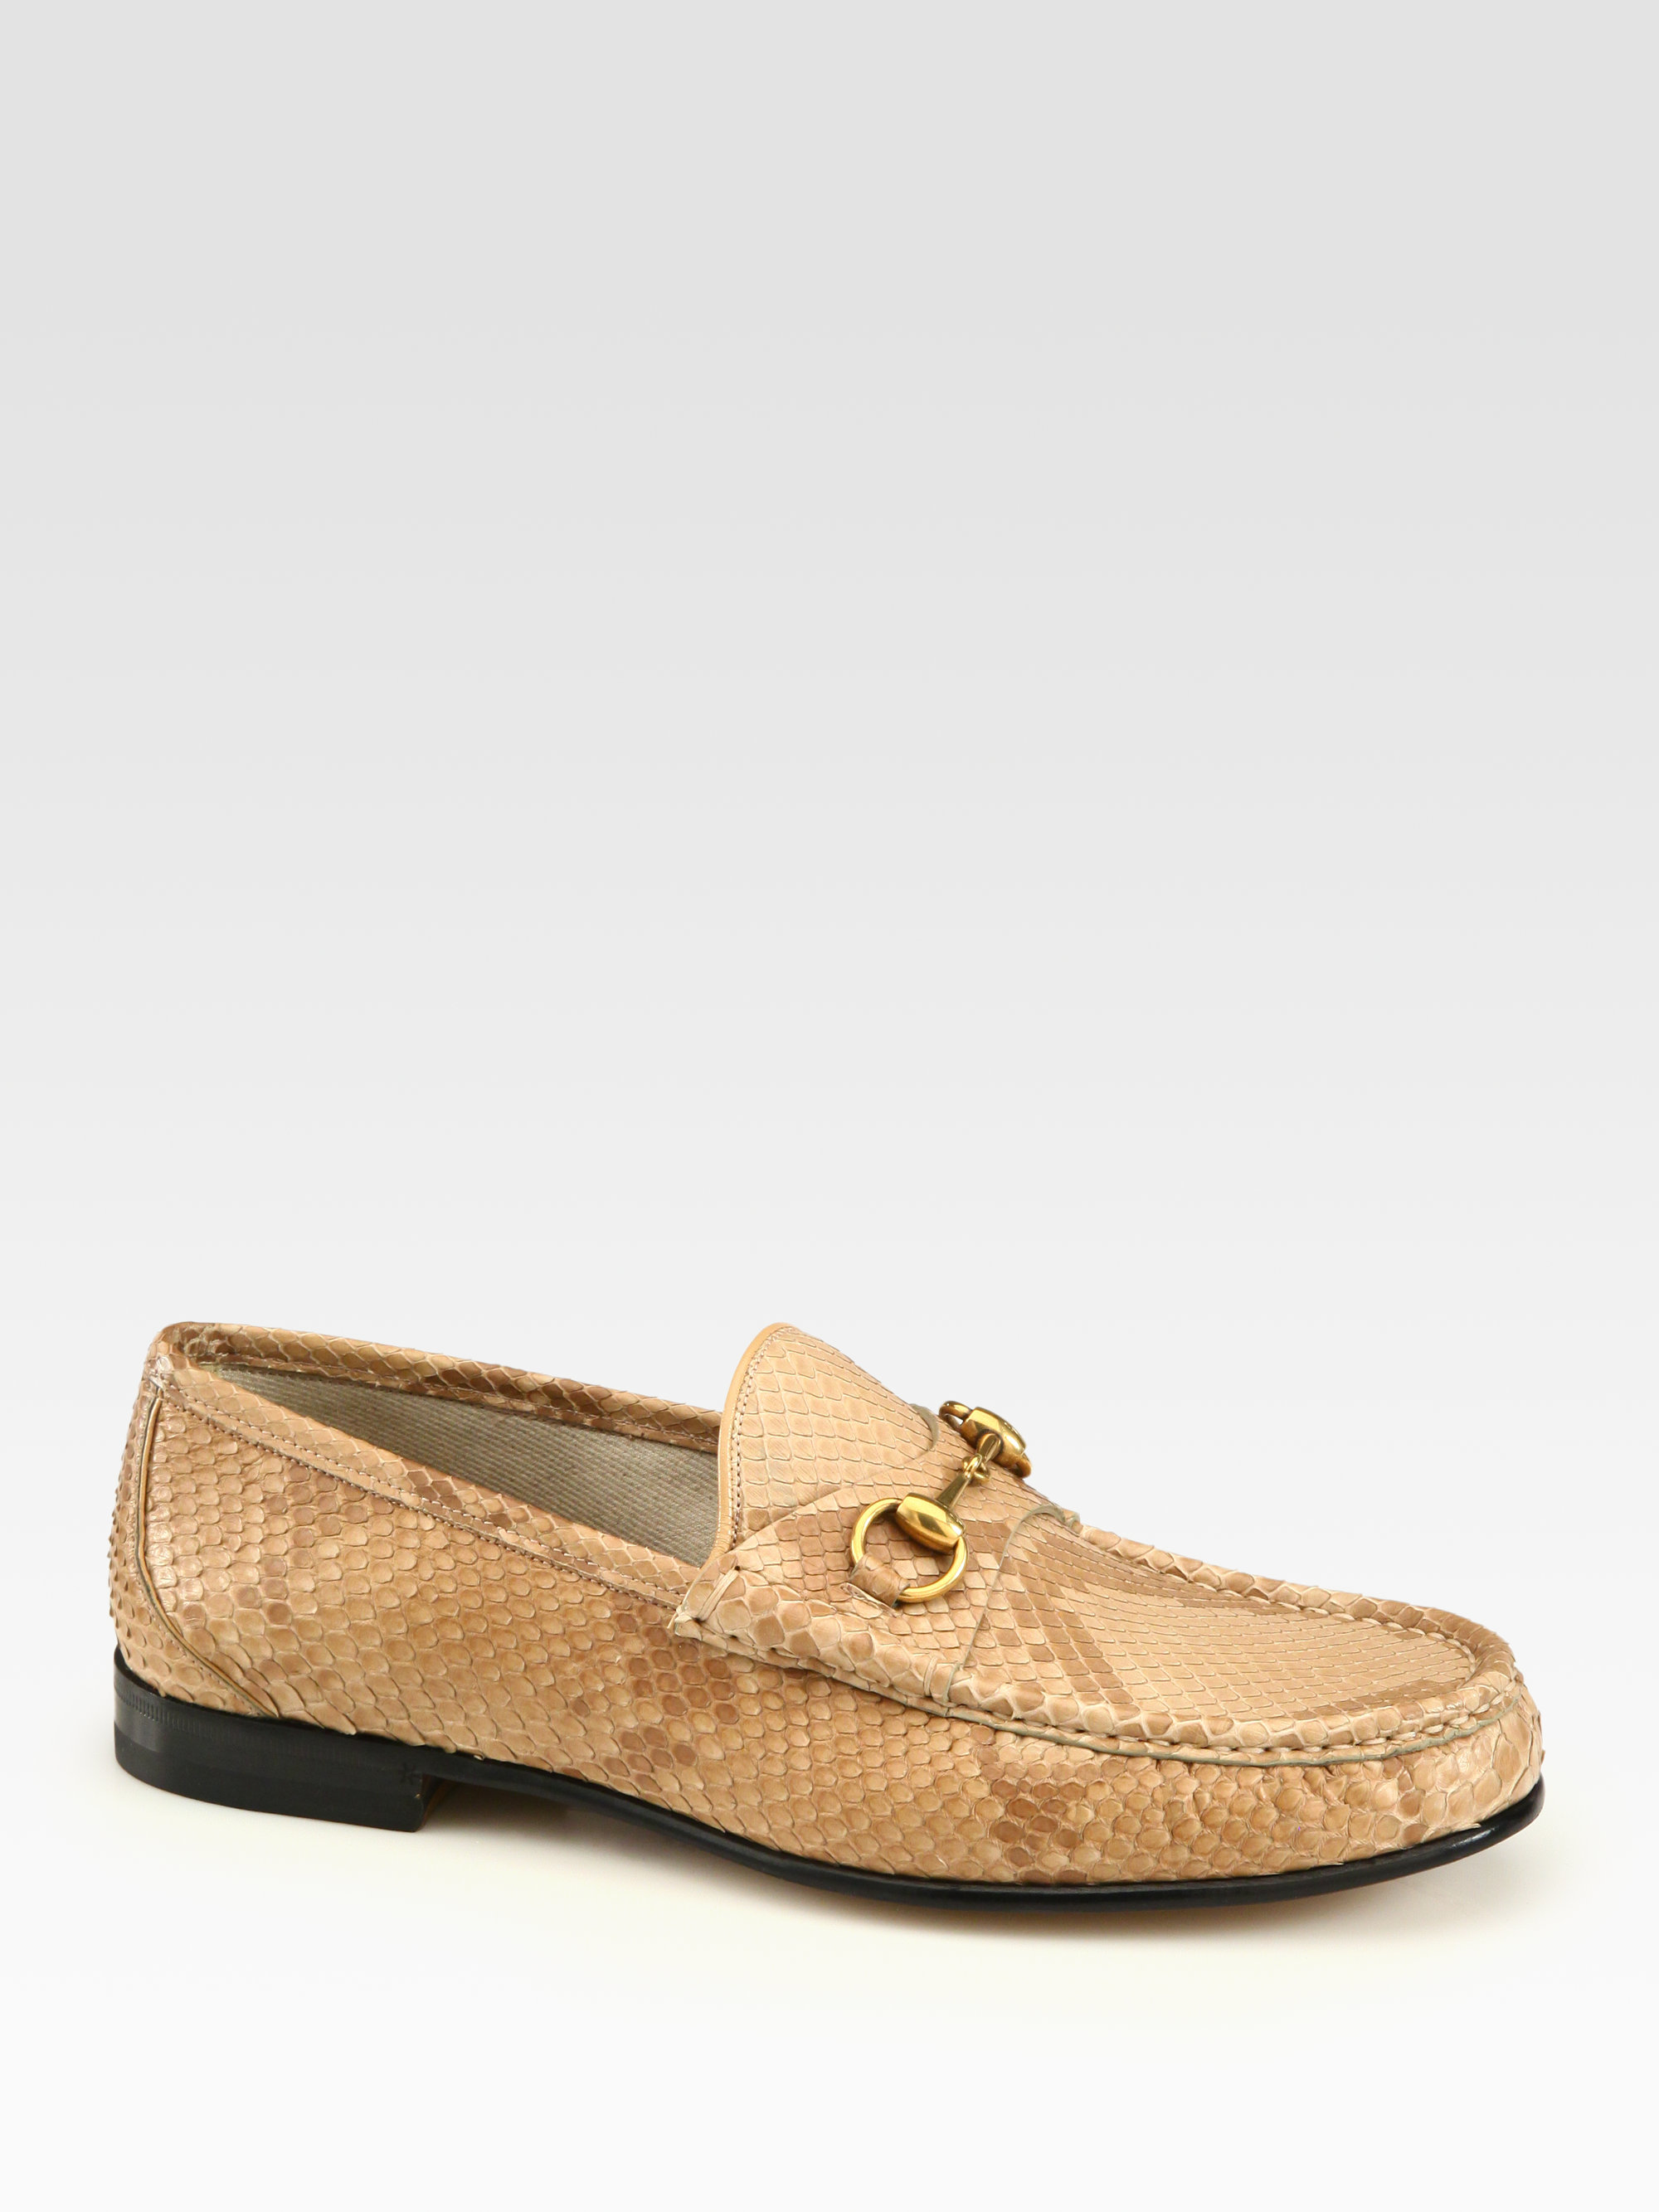 7614355cd Gucci Green Python Horsebit Loafers in Natural for Men - Lyst